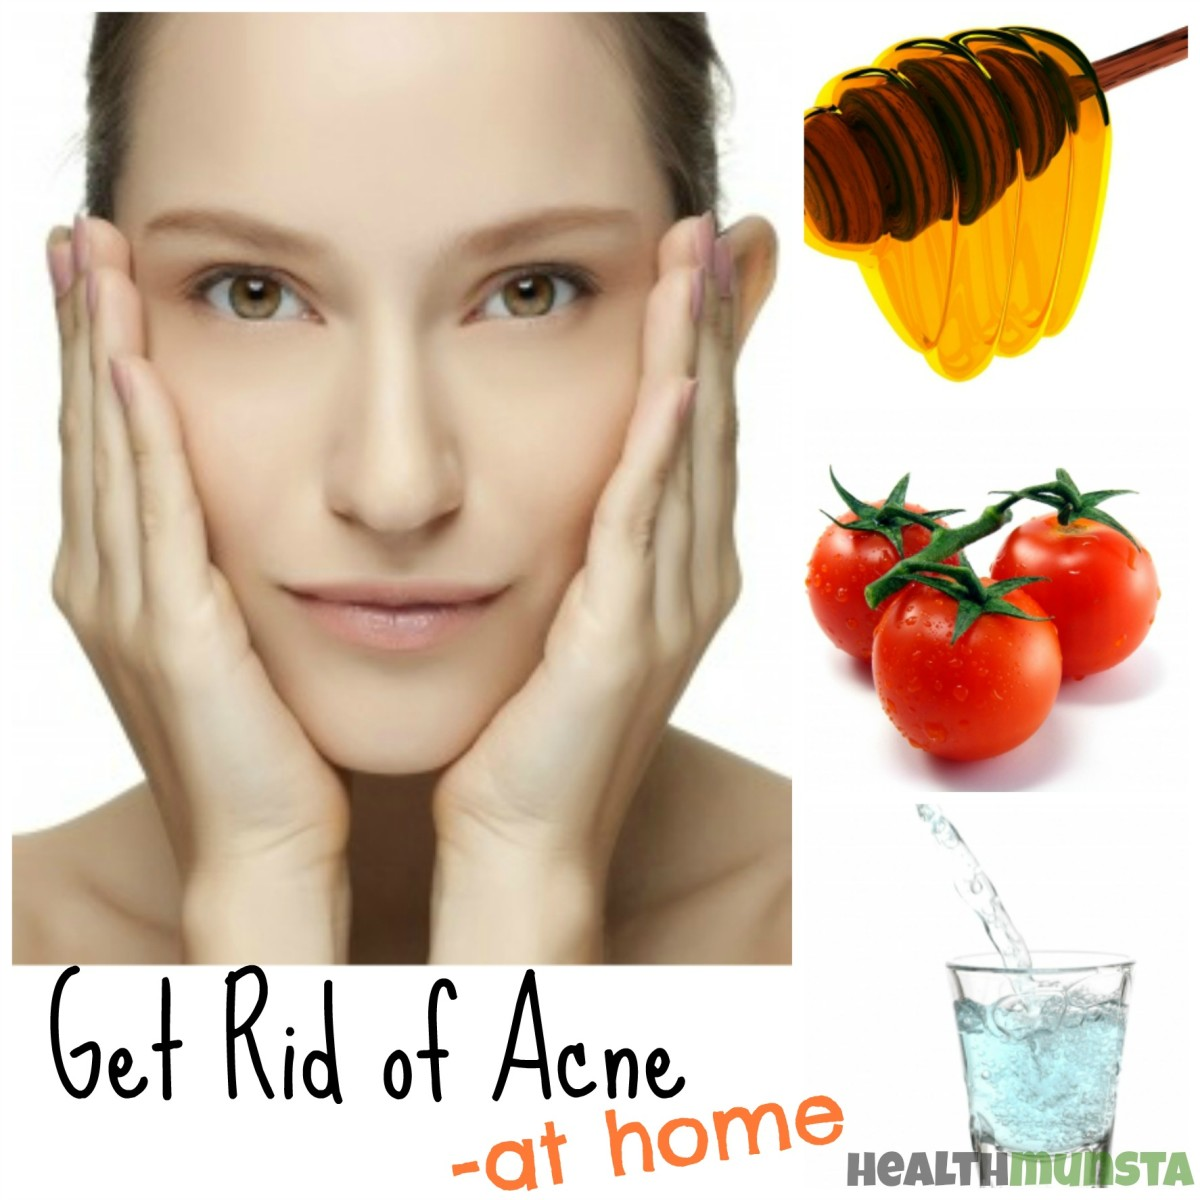 Using simple good habits and natural remedies, you'll be surprised how easy it is to get rid of acne!